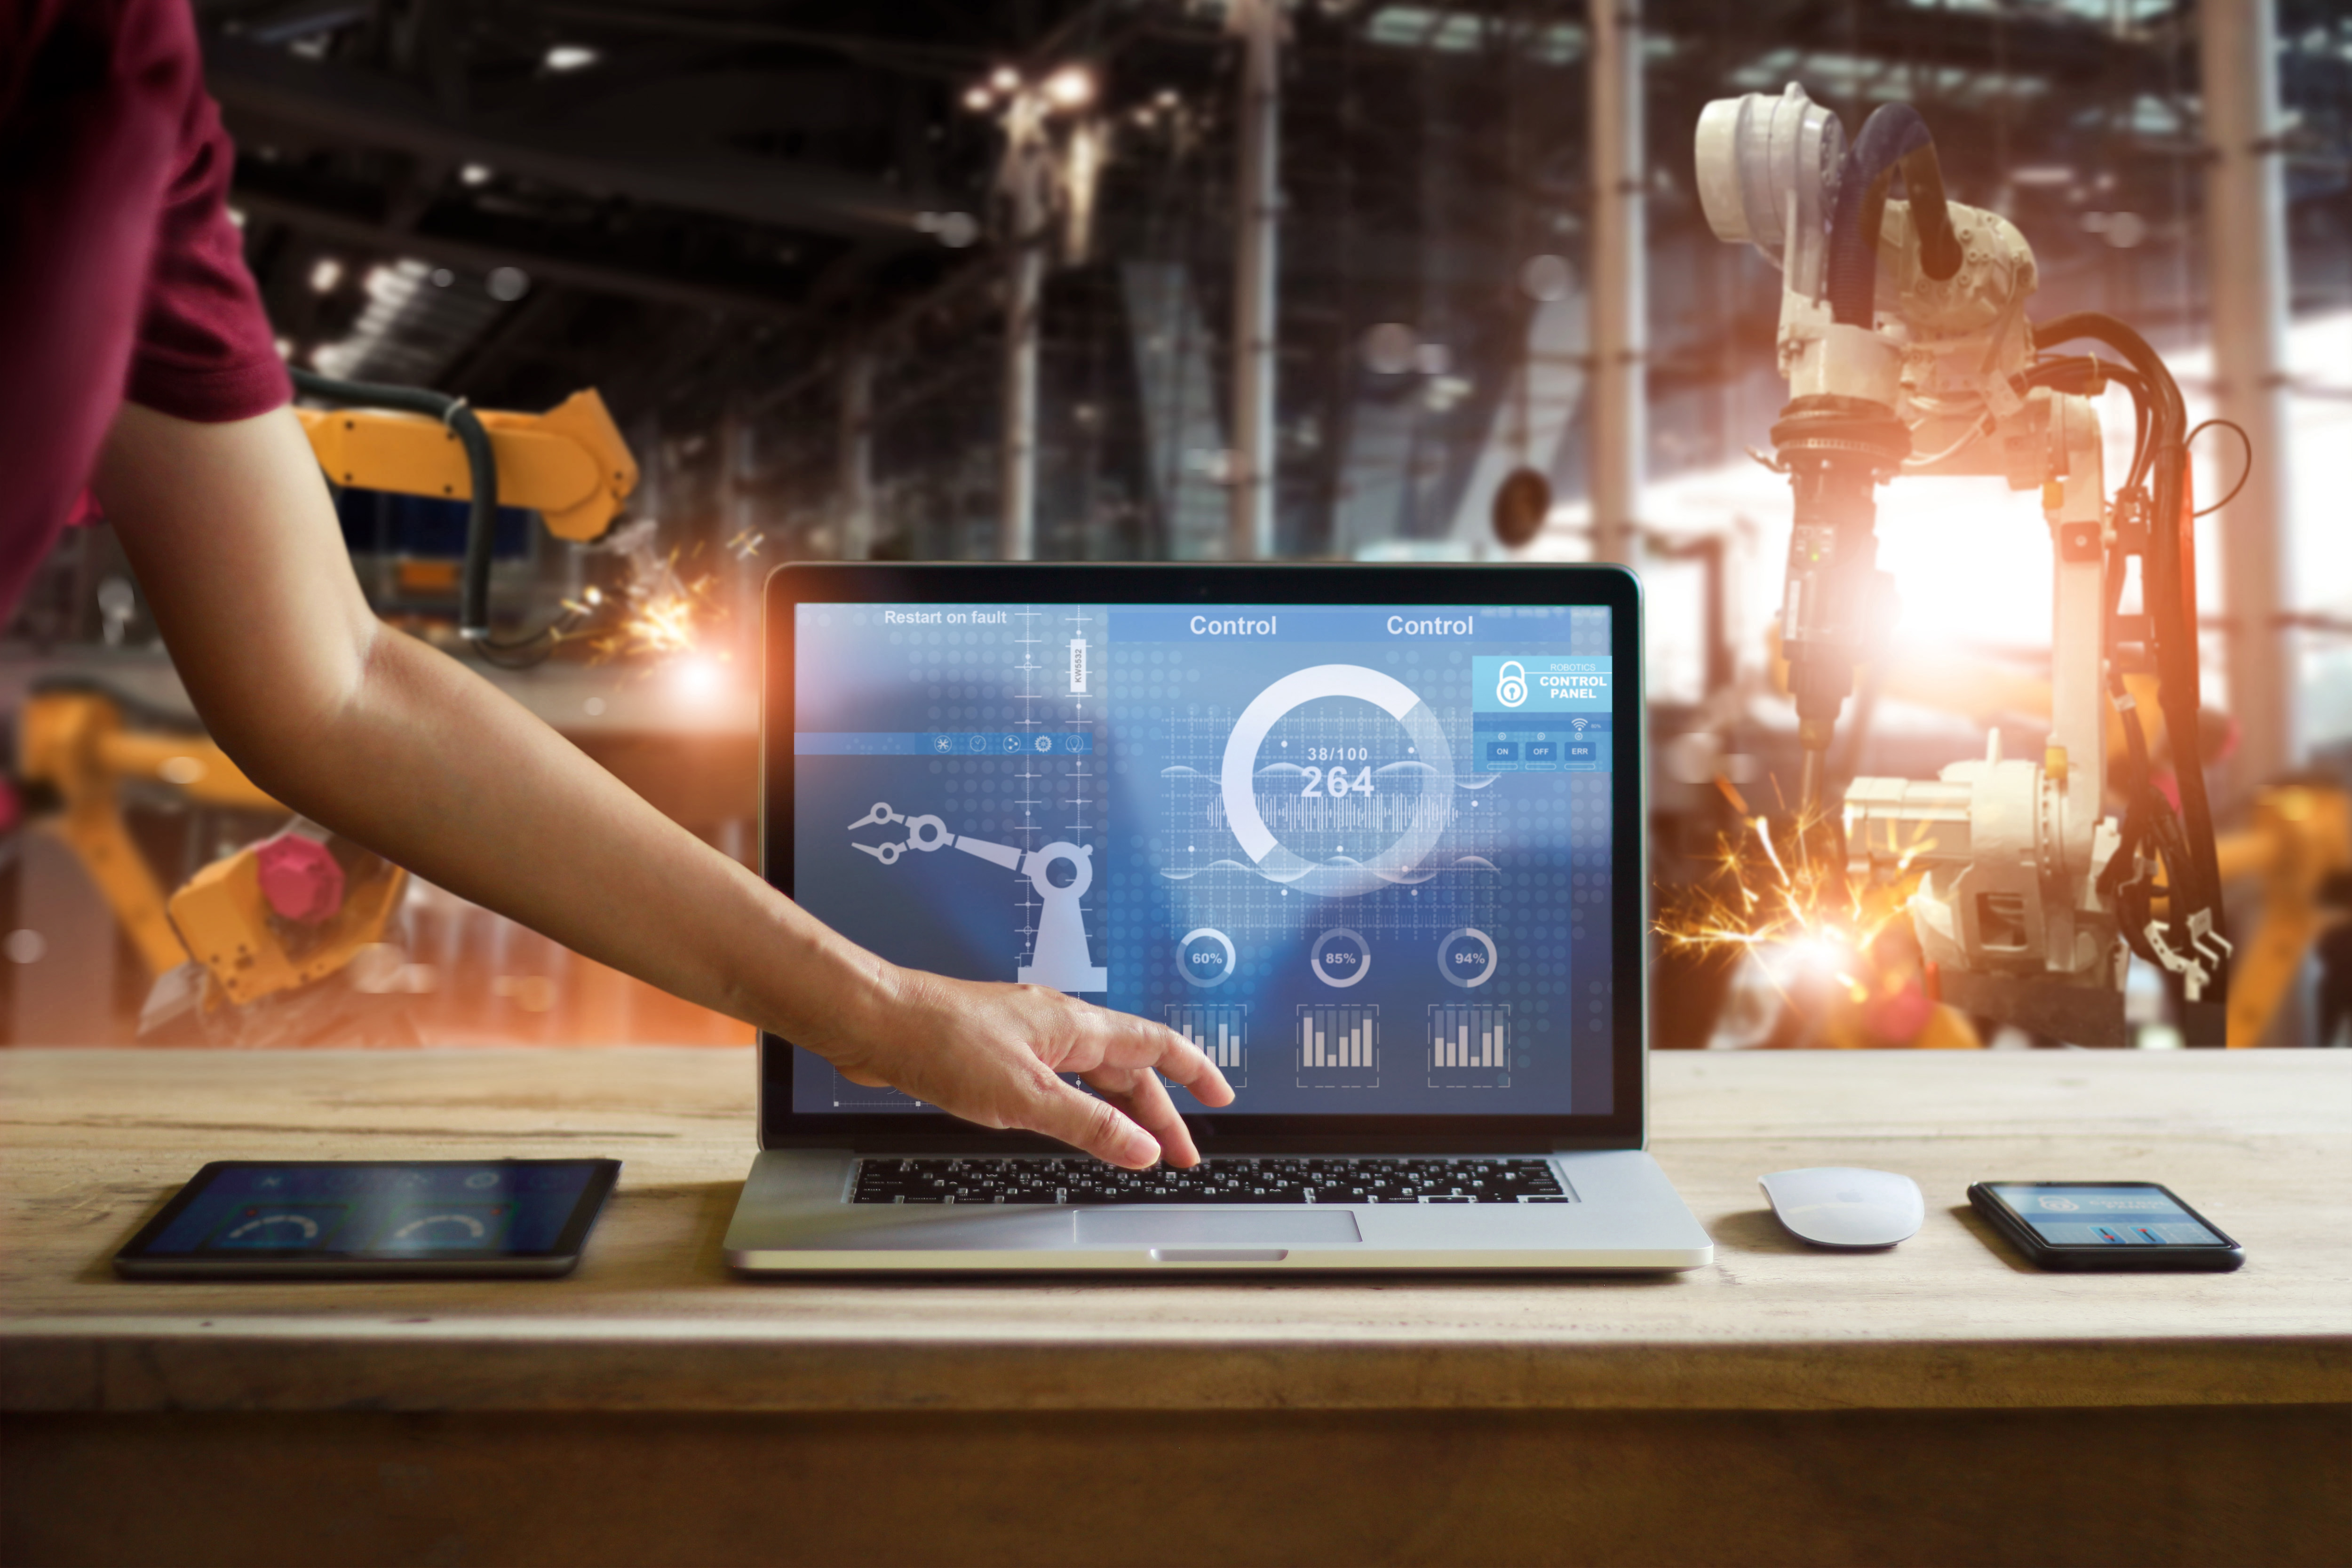 Maximum automation starts with the right mindset